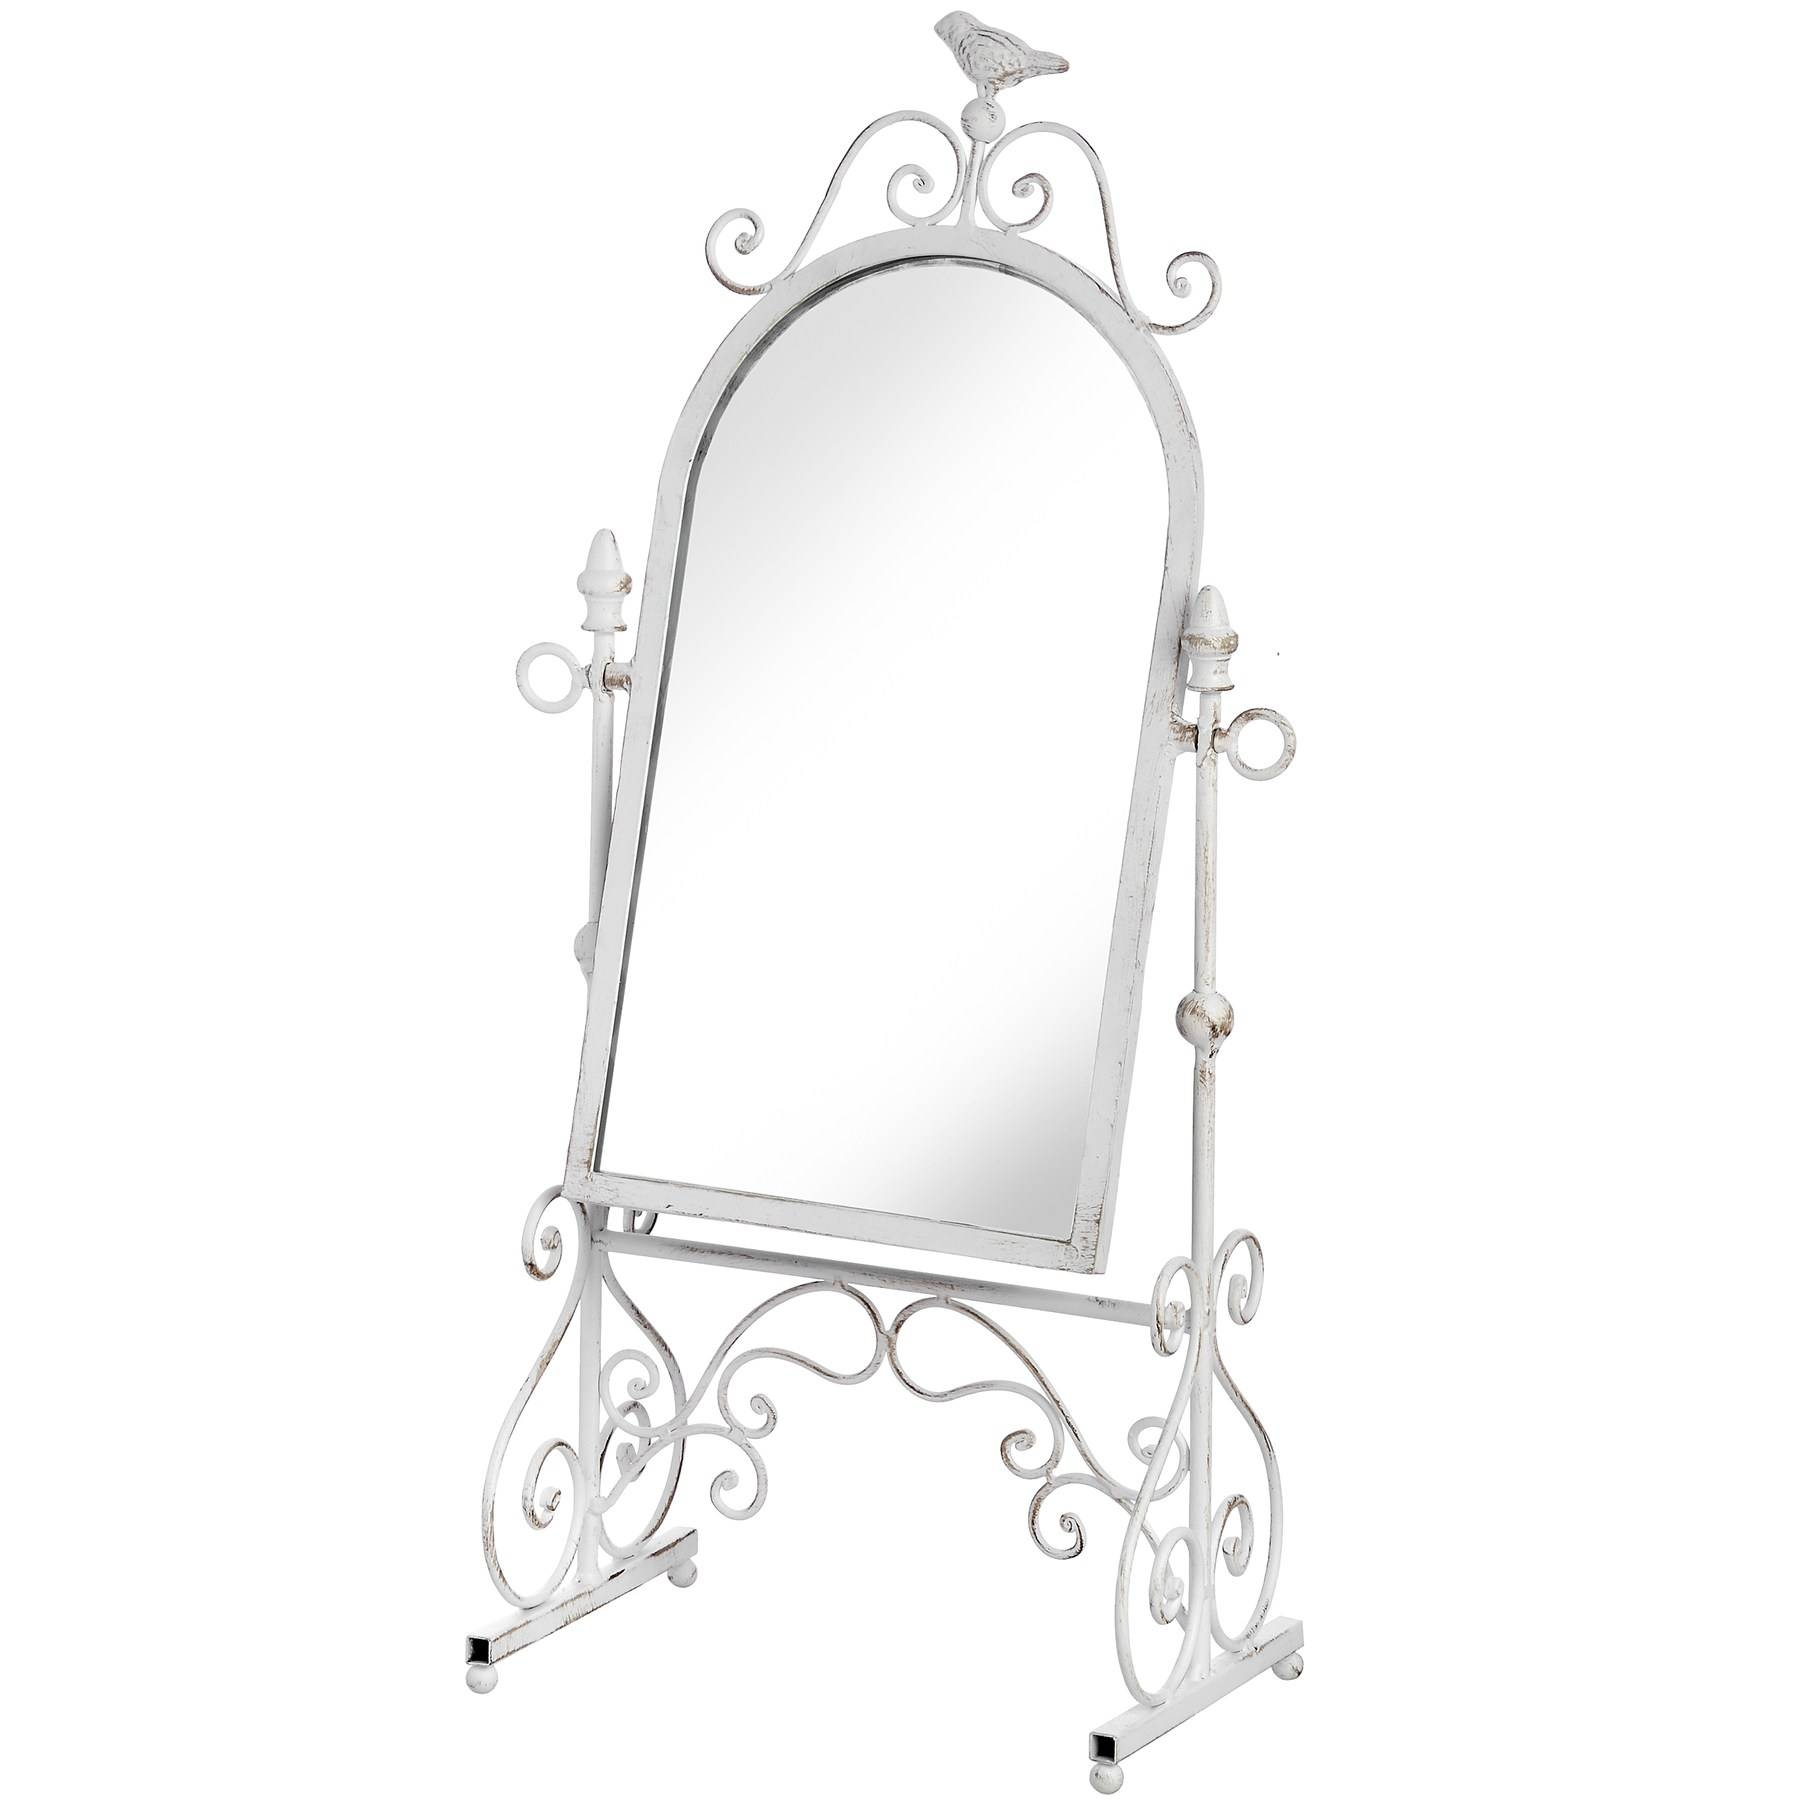 Ornate Floor Standing Mirror From Hill Interiors Inside Ornate Dressing Table Mirrors (View 7 of 15)